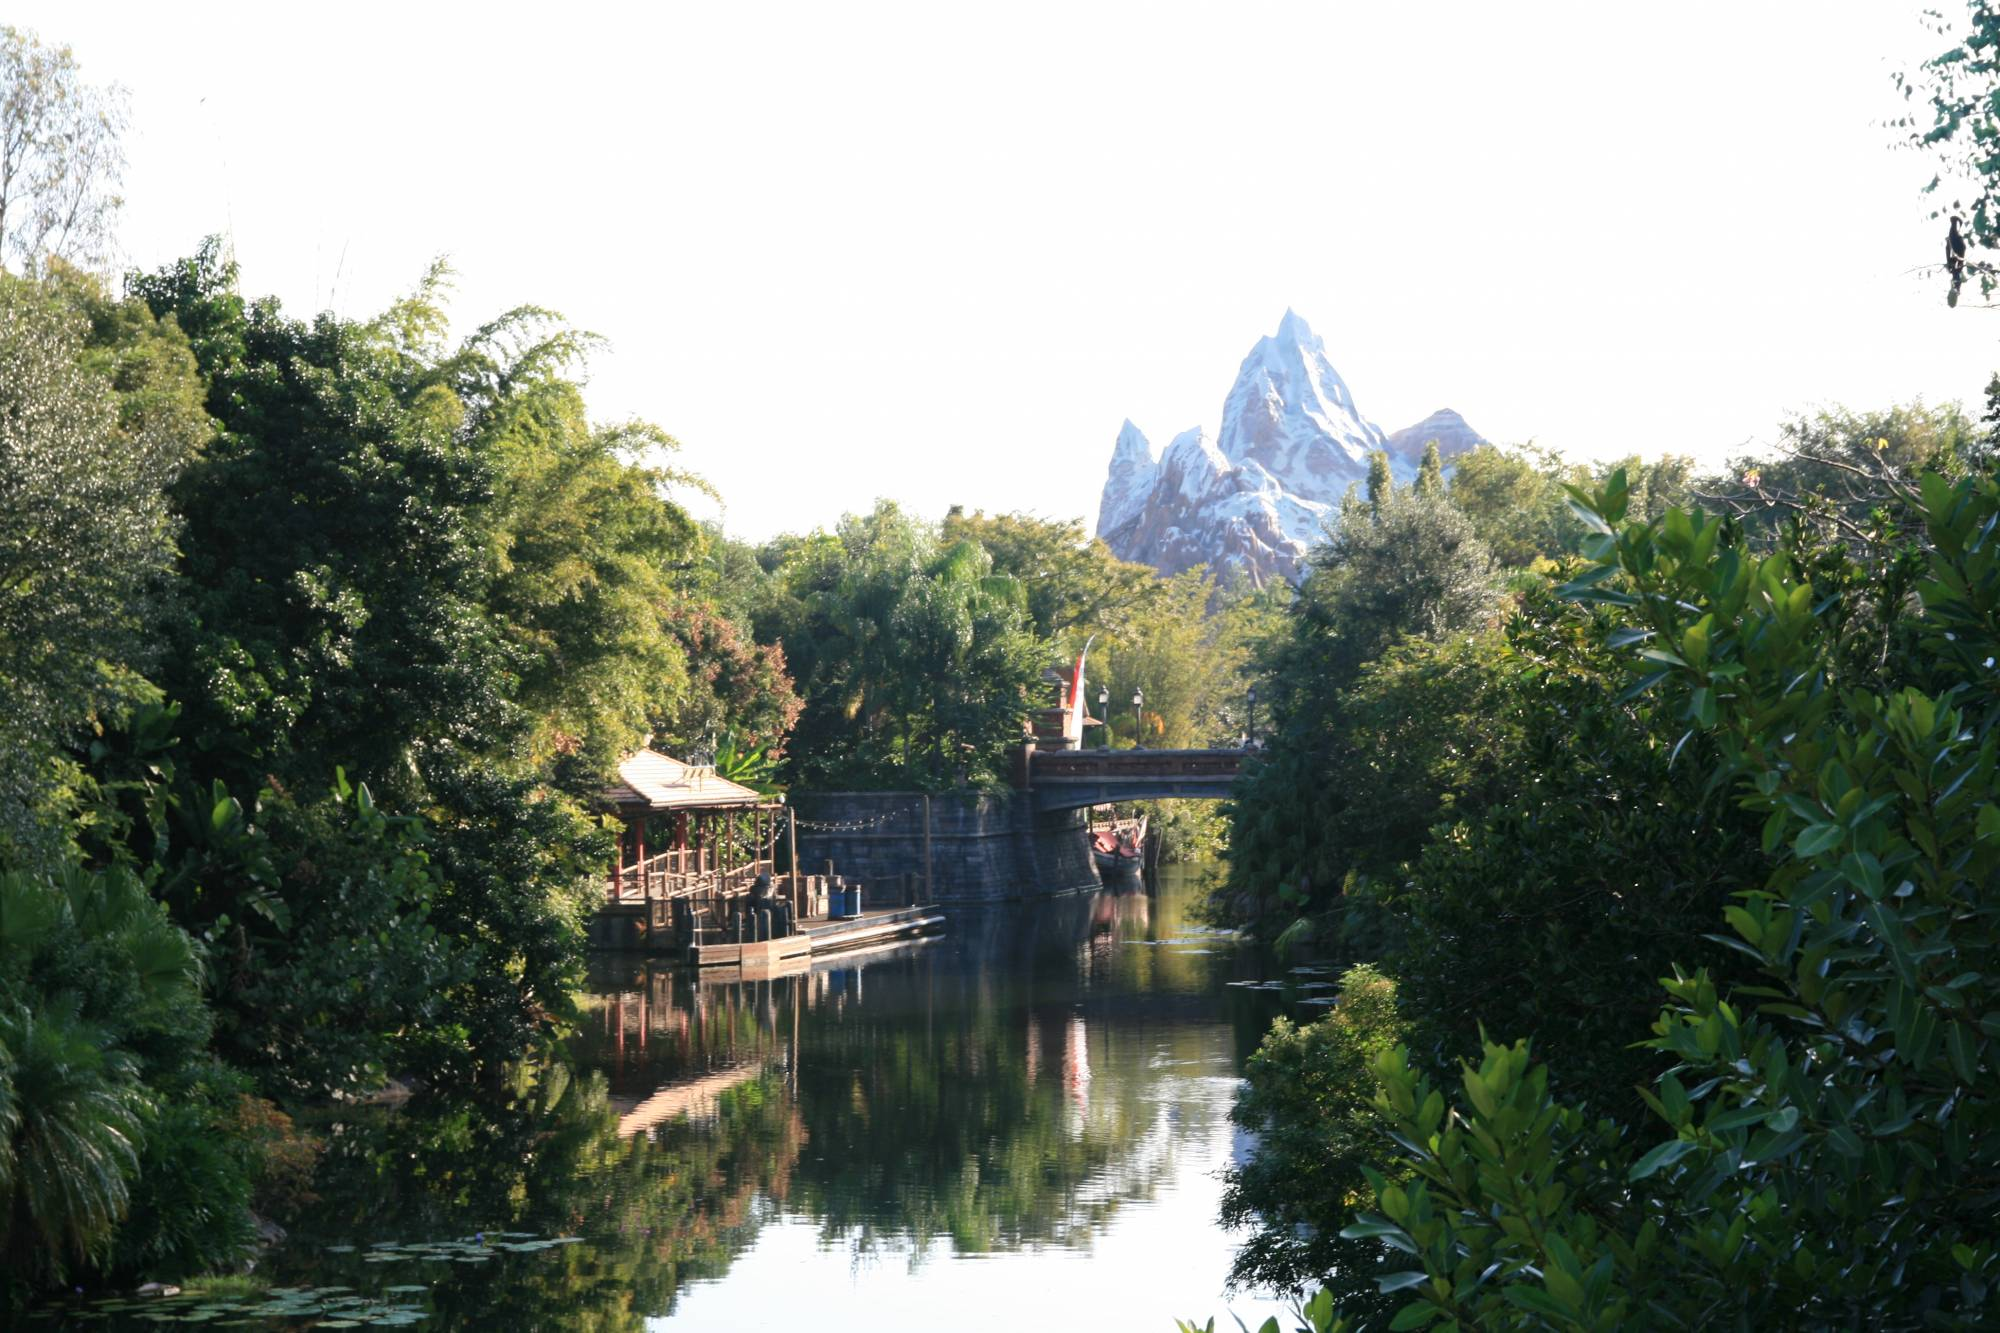 Looking out at Expedition Everest